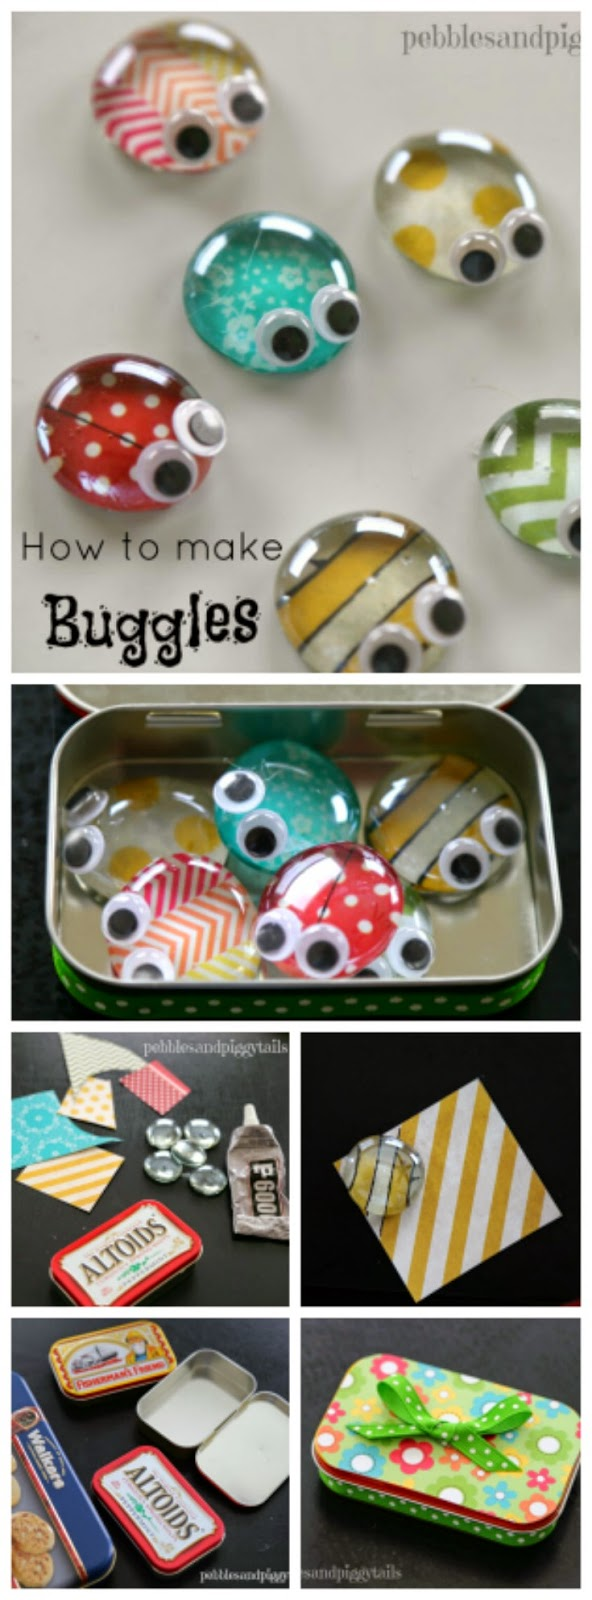 Head over to the next page to see how to make the cute tin container